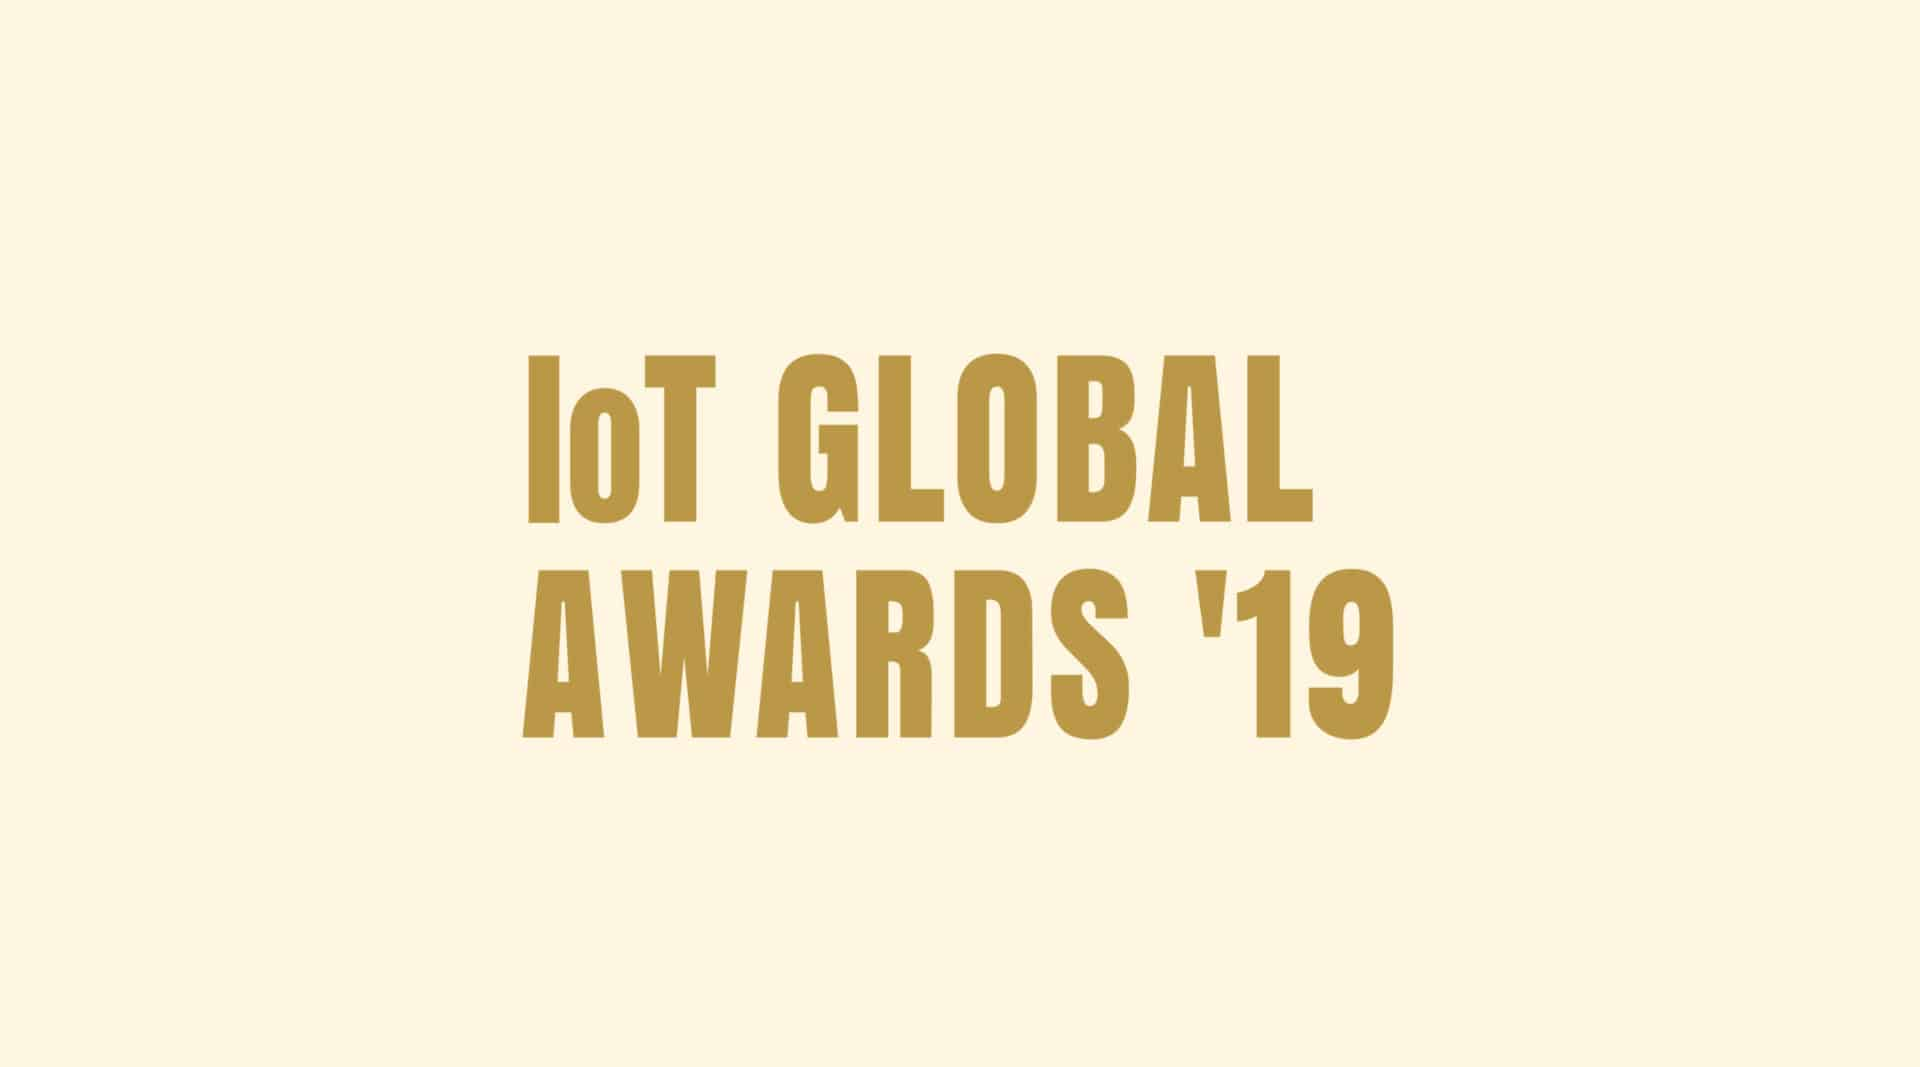 Enter your successful IoT use cases and innovations in the IoT Global Awards 2019